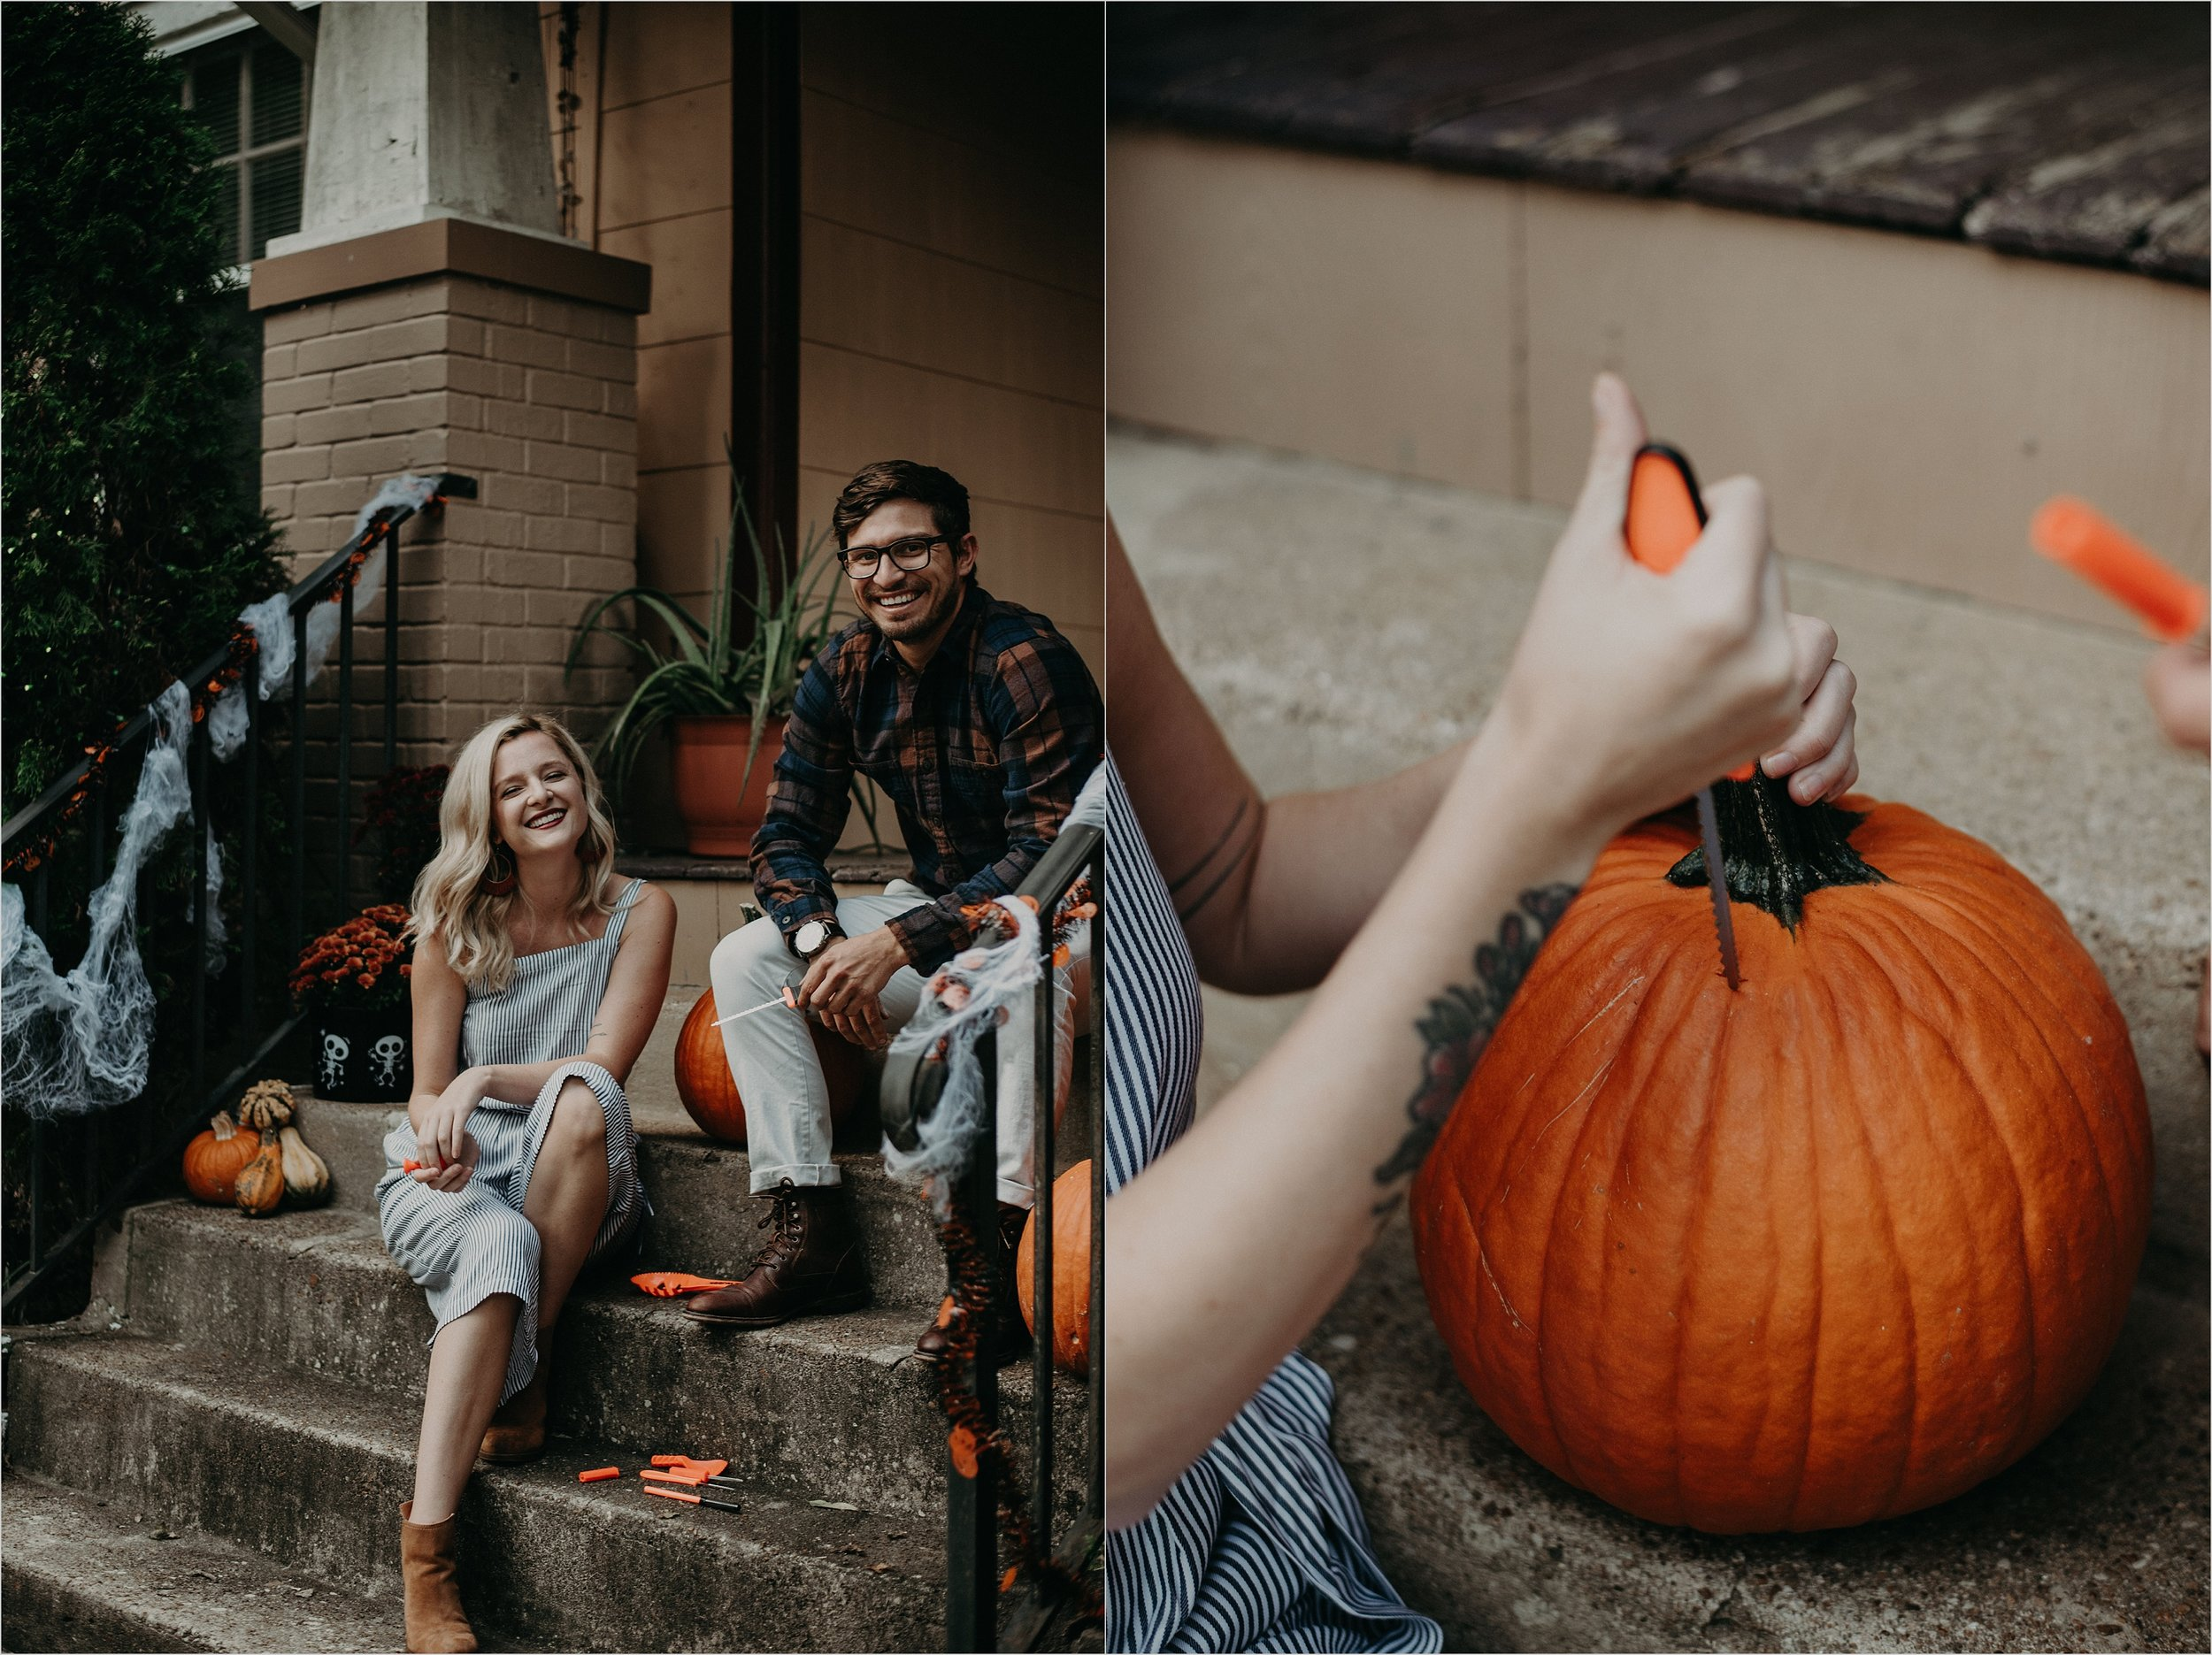 Taylor_English_Photography_Pumpkin_Carving_Chattanooga_Tennessee_0006.jpg